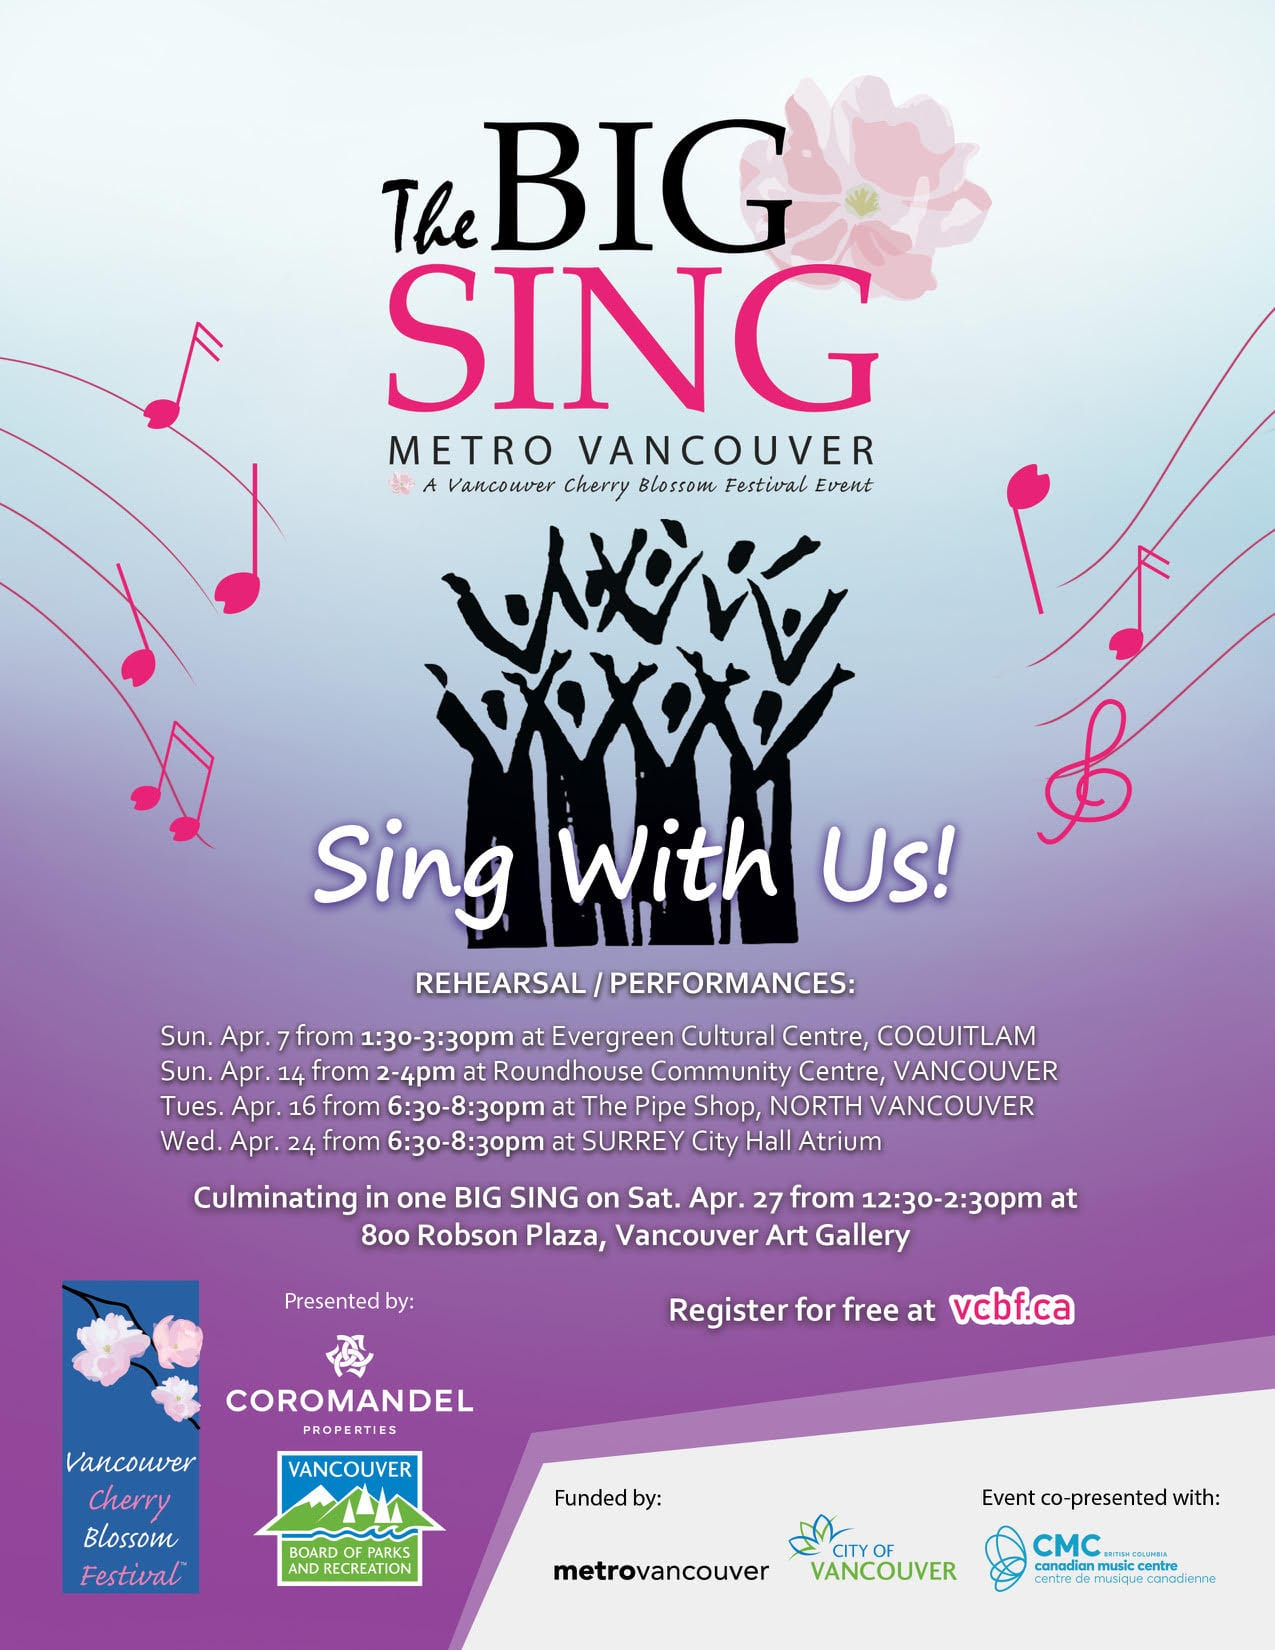 THE-BIG-SING-OFFICAL-POSTER